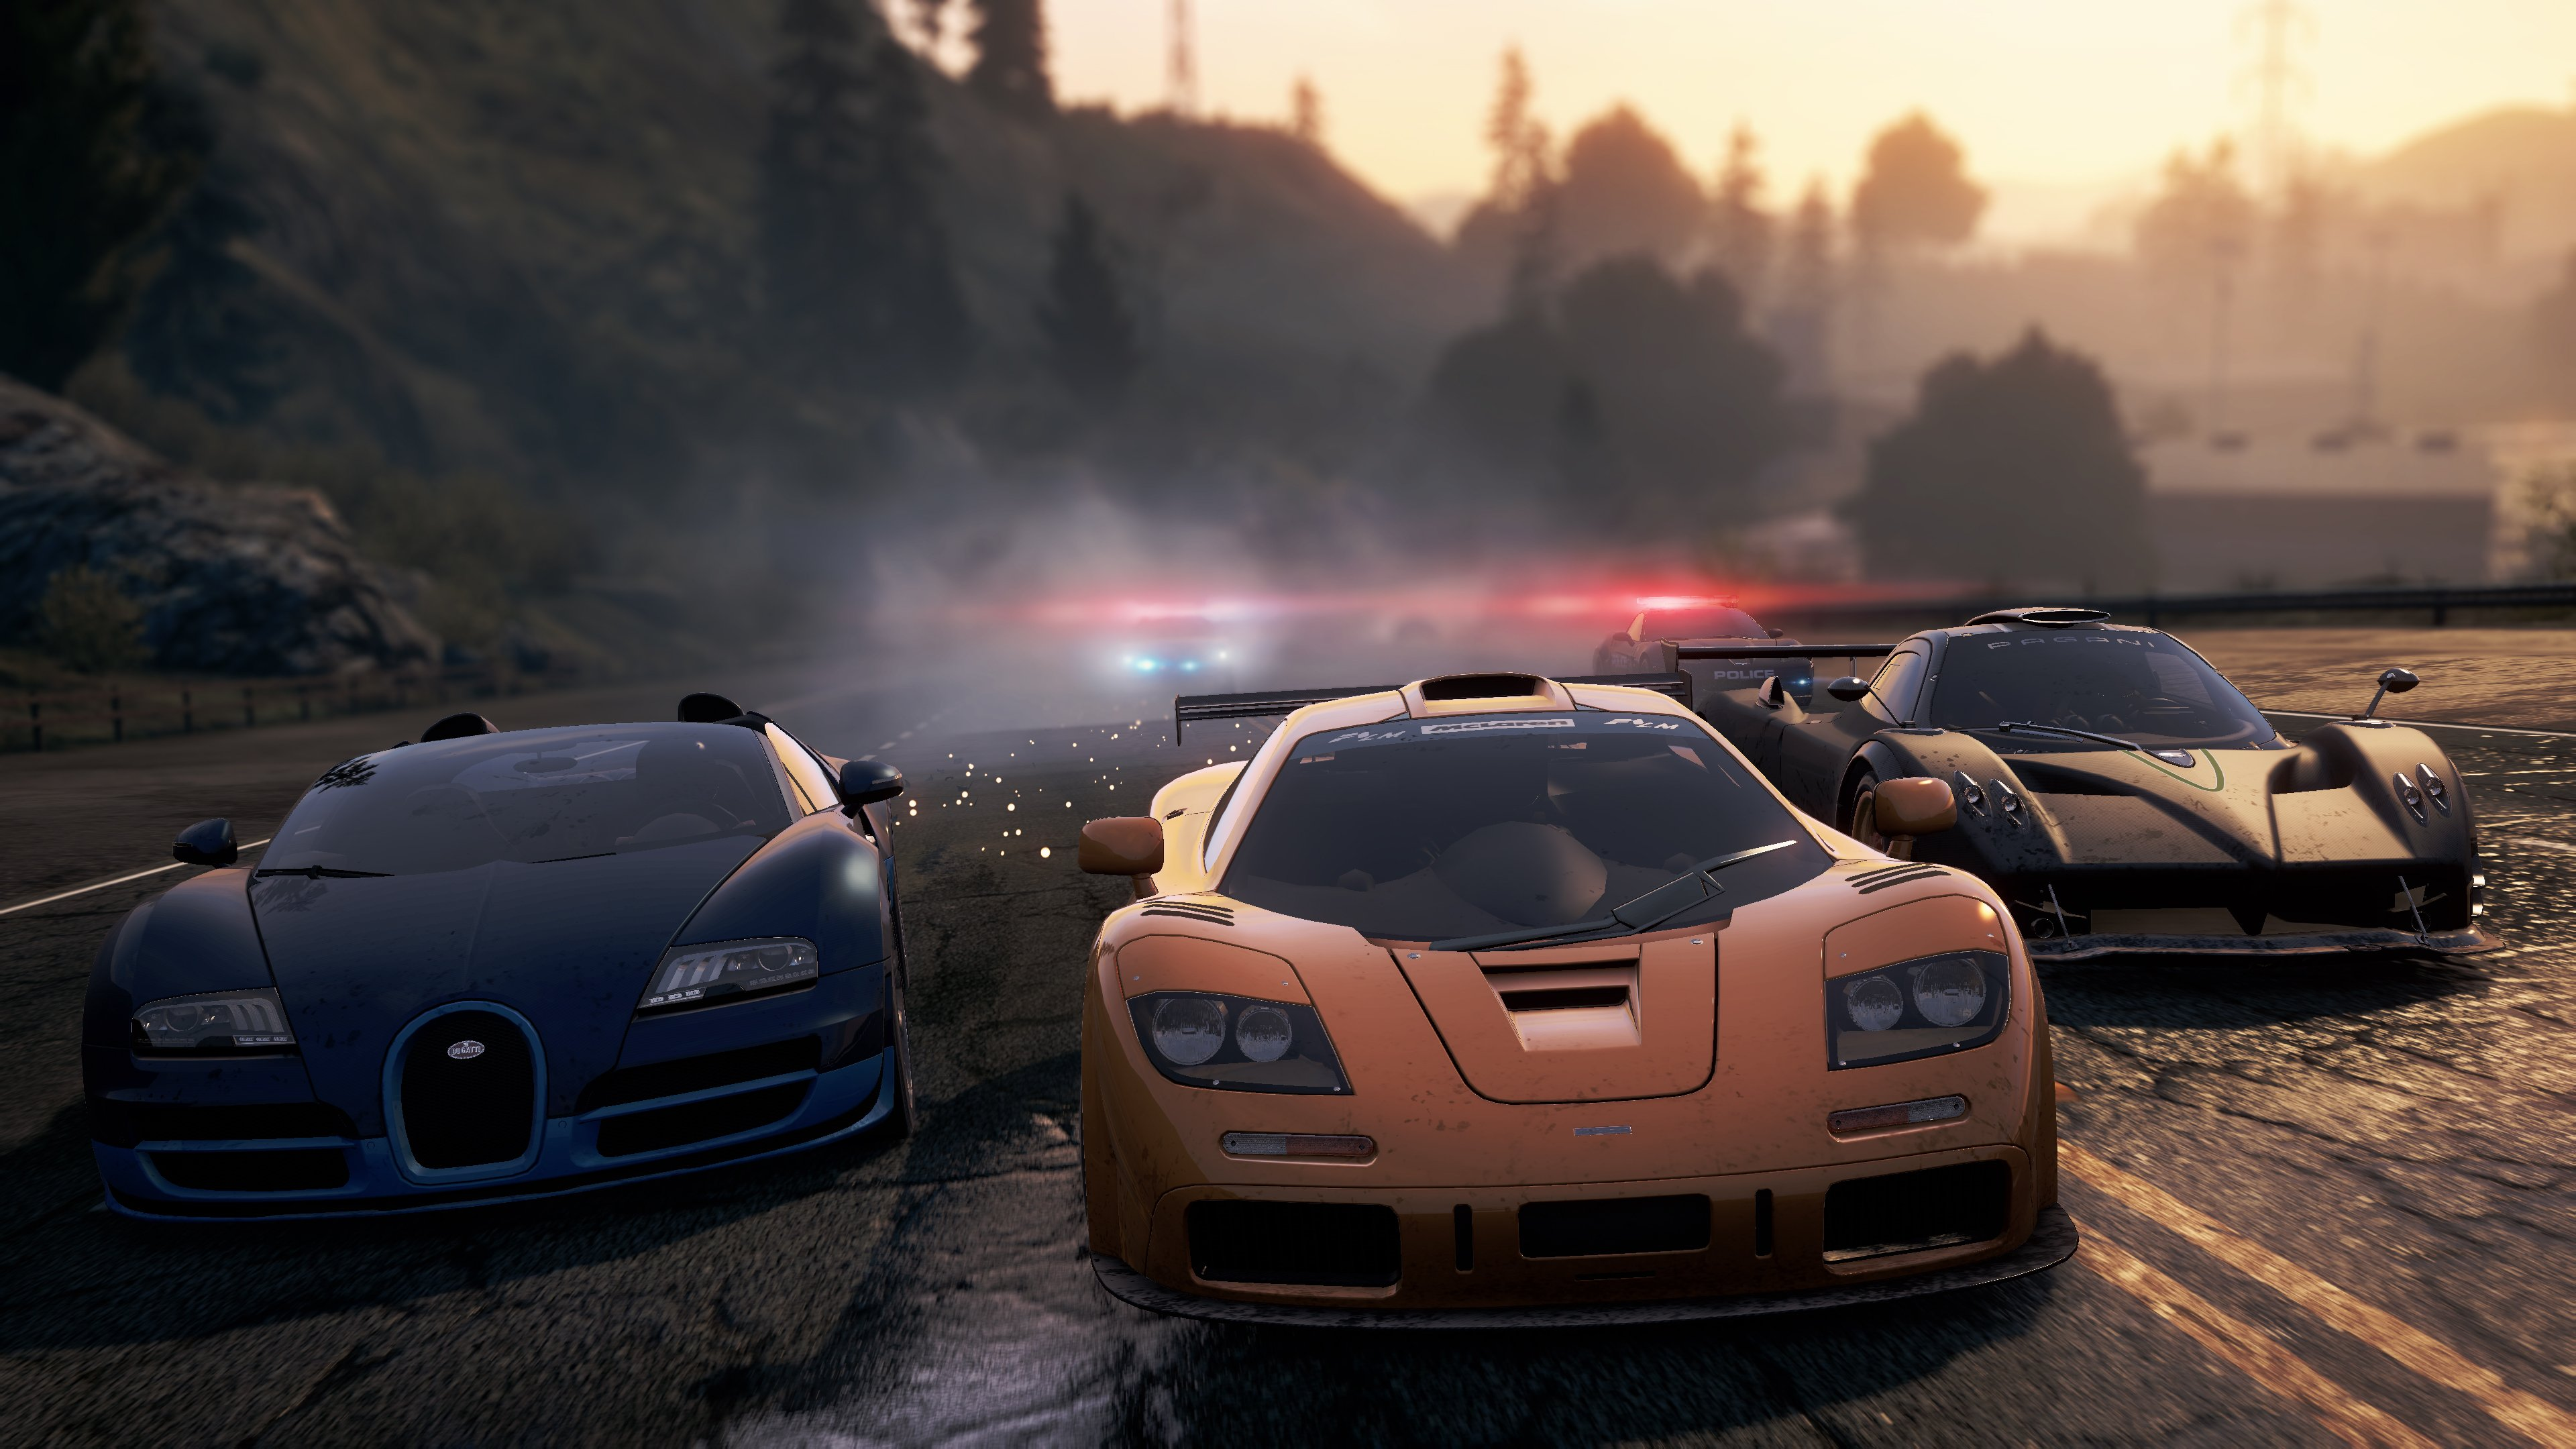 74+] Nfs Most Wanted Wallpaper on WallpaperSafari